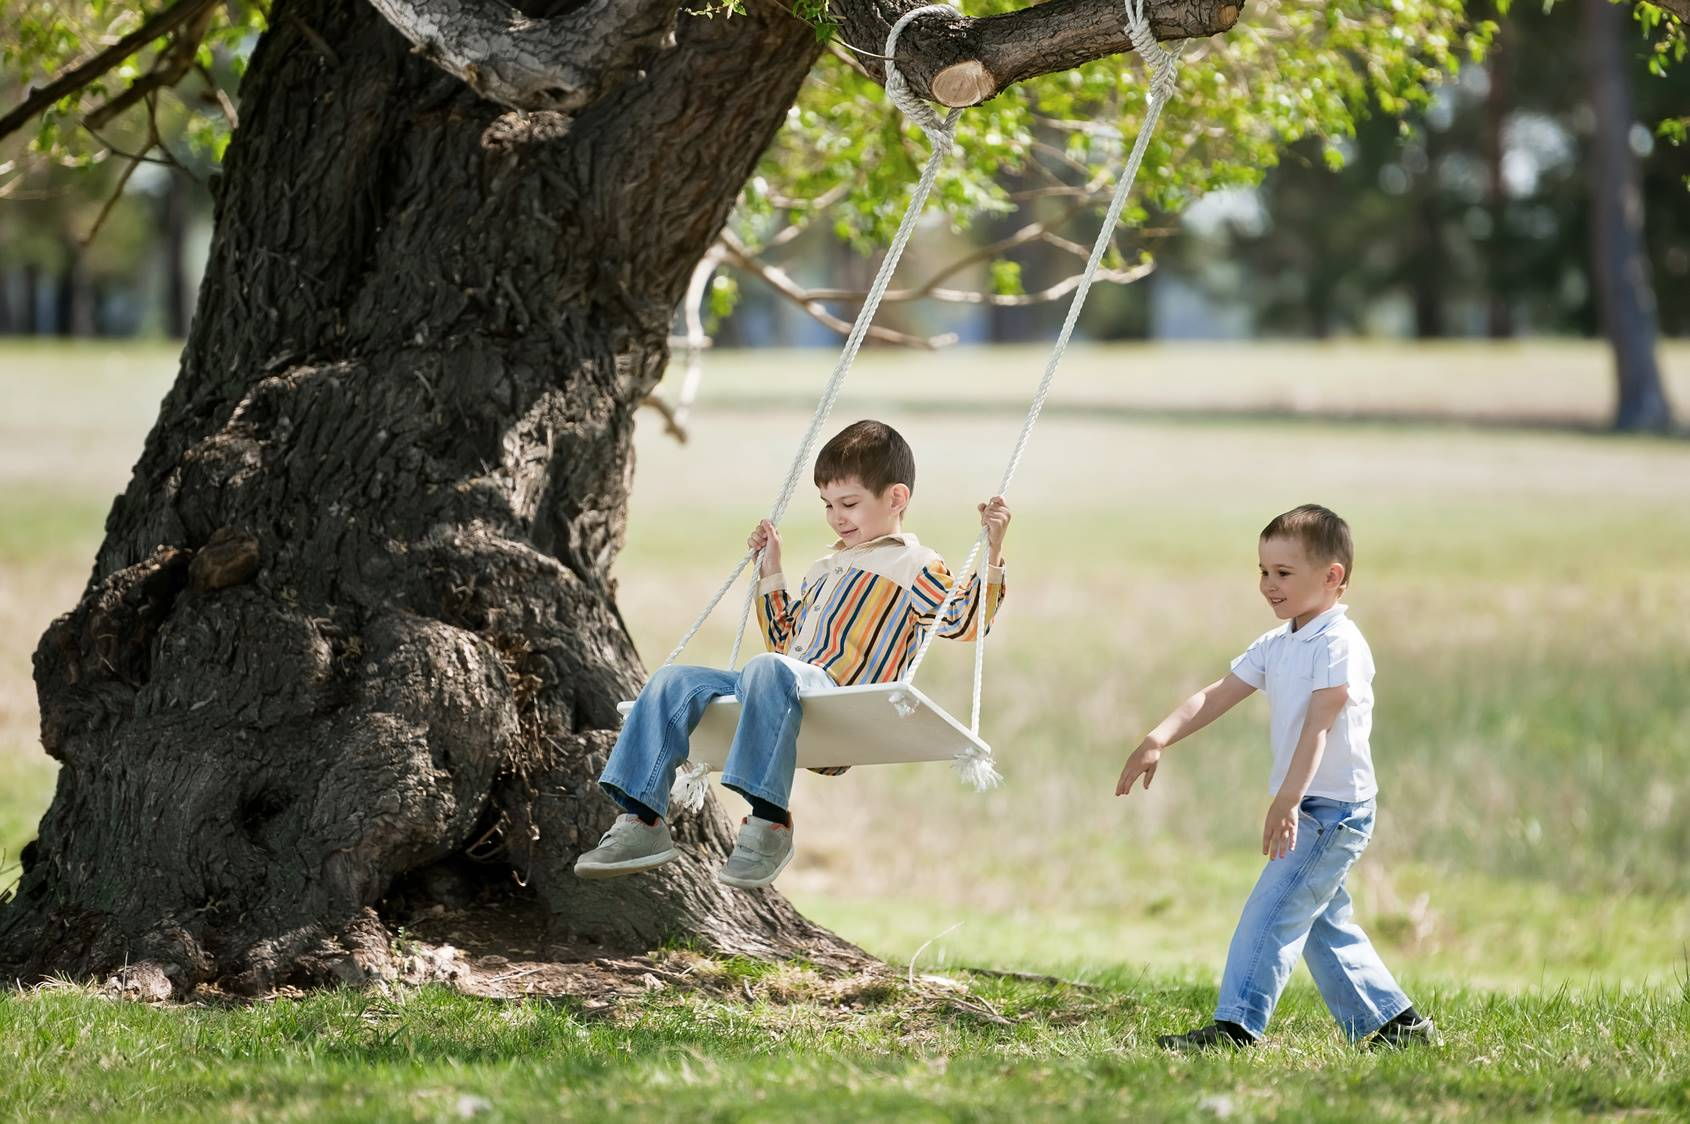 With you swinging under the oak tree